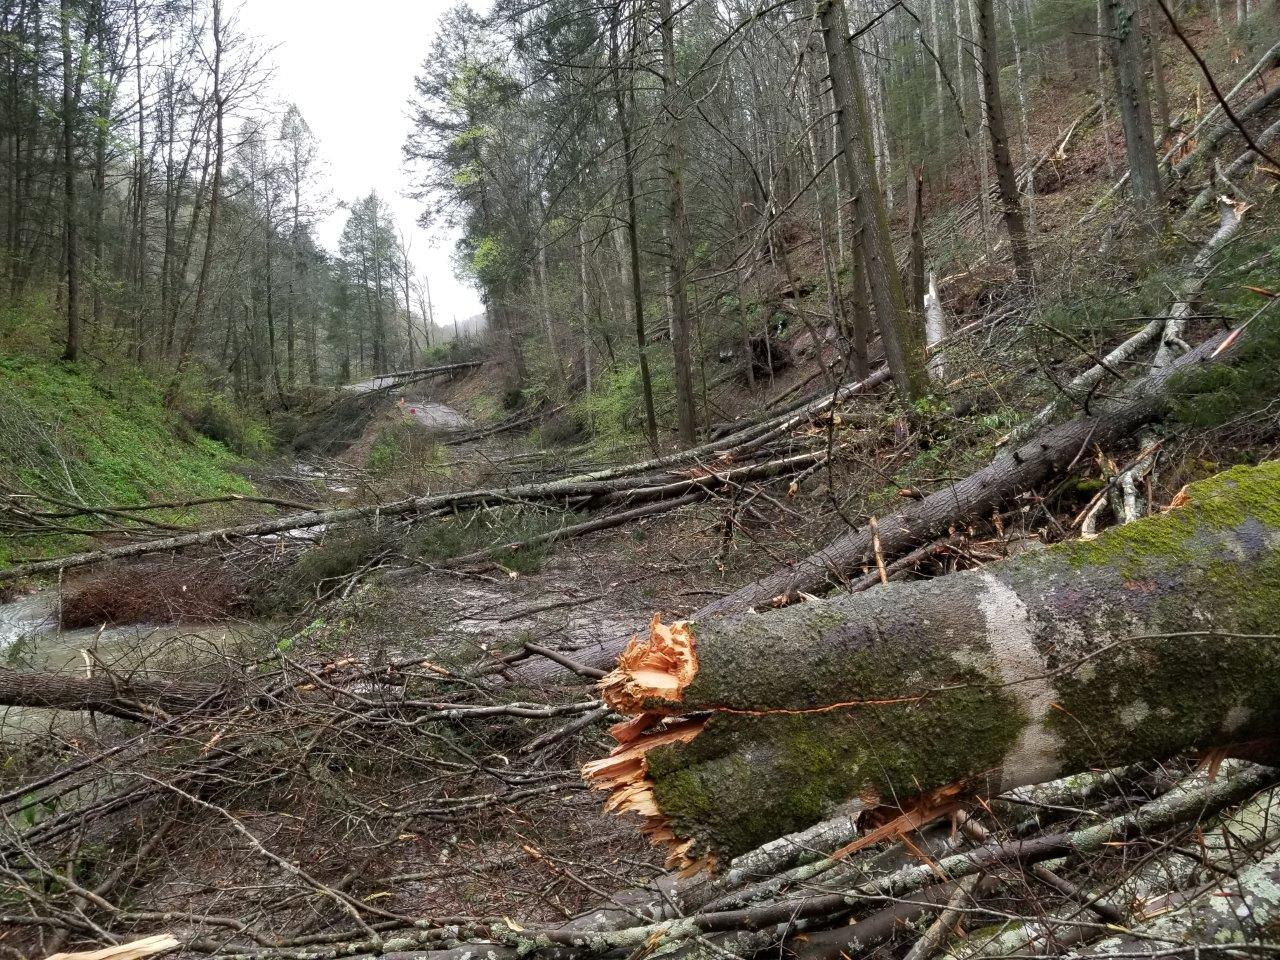 Division of Forestry Partnership with KEWS Helps Restore, Maintain Emergency Communication